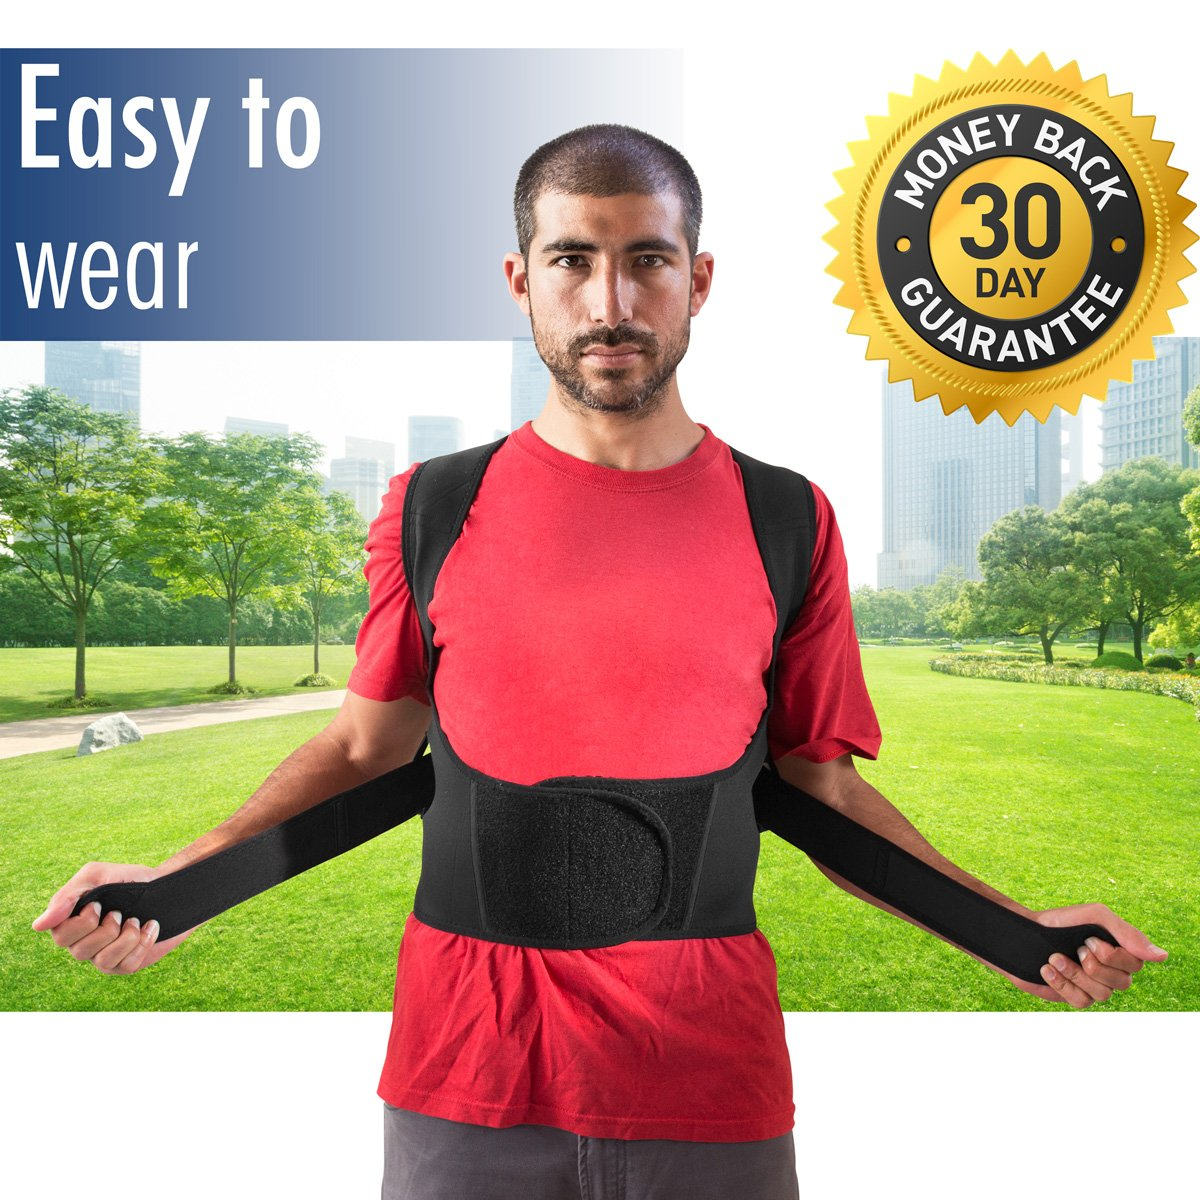 THE ULTIMATE Posture Corrector for Women & Men Under Clothes   Effective & Comfortable   Back Brace for Slouching & Hunching -Shoulders Clavicle Support   Upper & Lower Back Supports   Body Therapy by TK Care Pro. (Image #7)